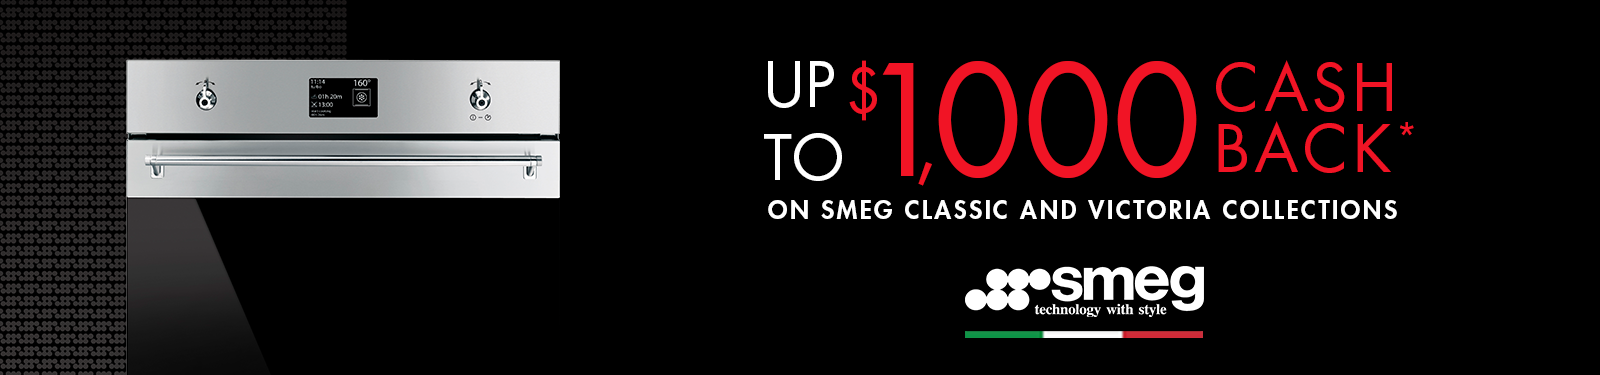 Smeg Up to $1000 Cashback